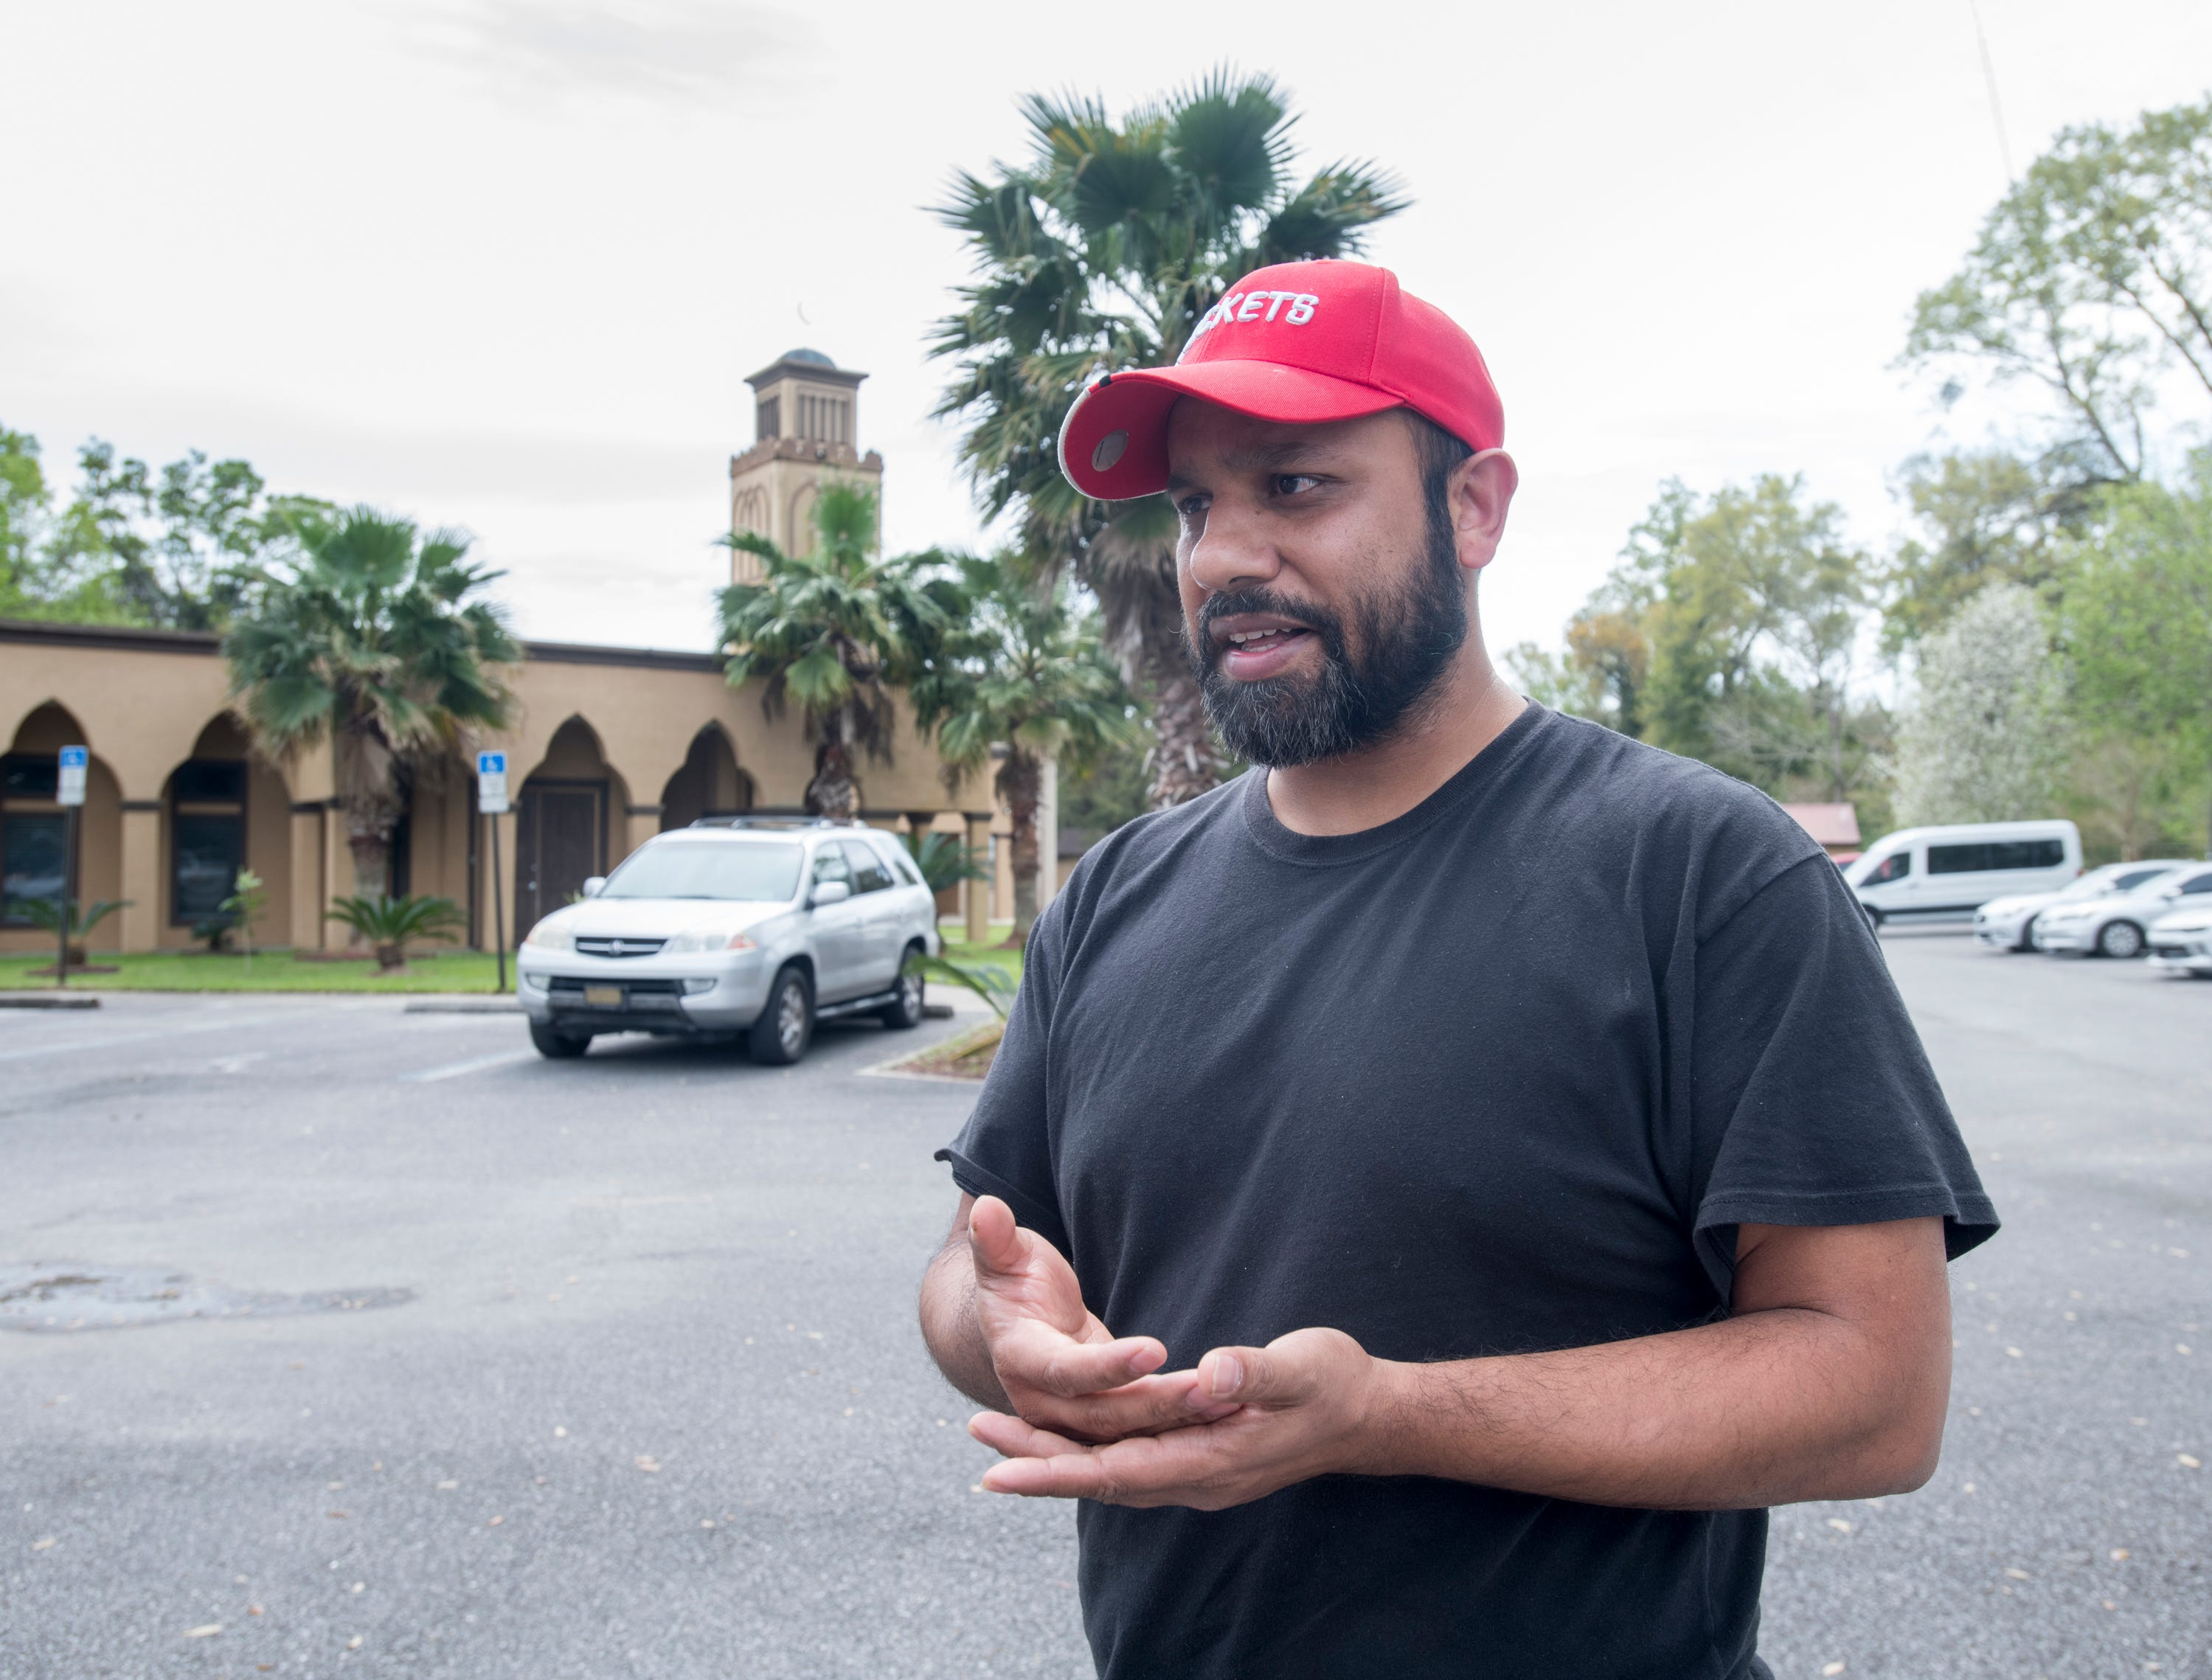 Tarik Ahmed, of Dallas, Texas, talks about the New Zealand mosque massacre prior to Jumu'ah (Friday Prayer) at the Islamic Center of Northwest Florida in Pensacola on Friday, March 15, 2019.